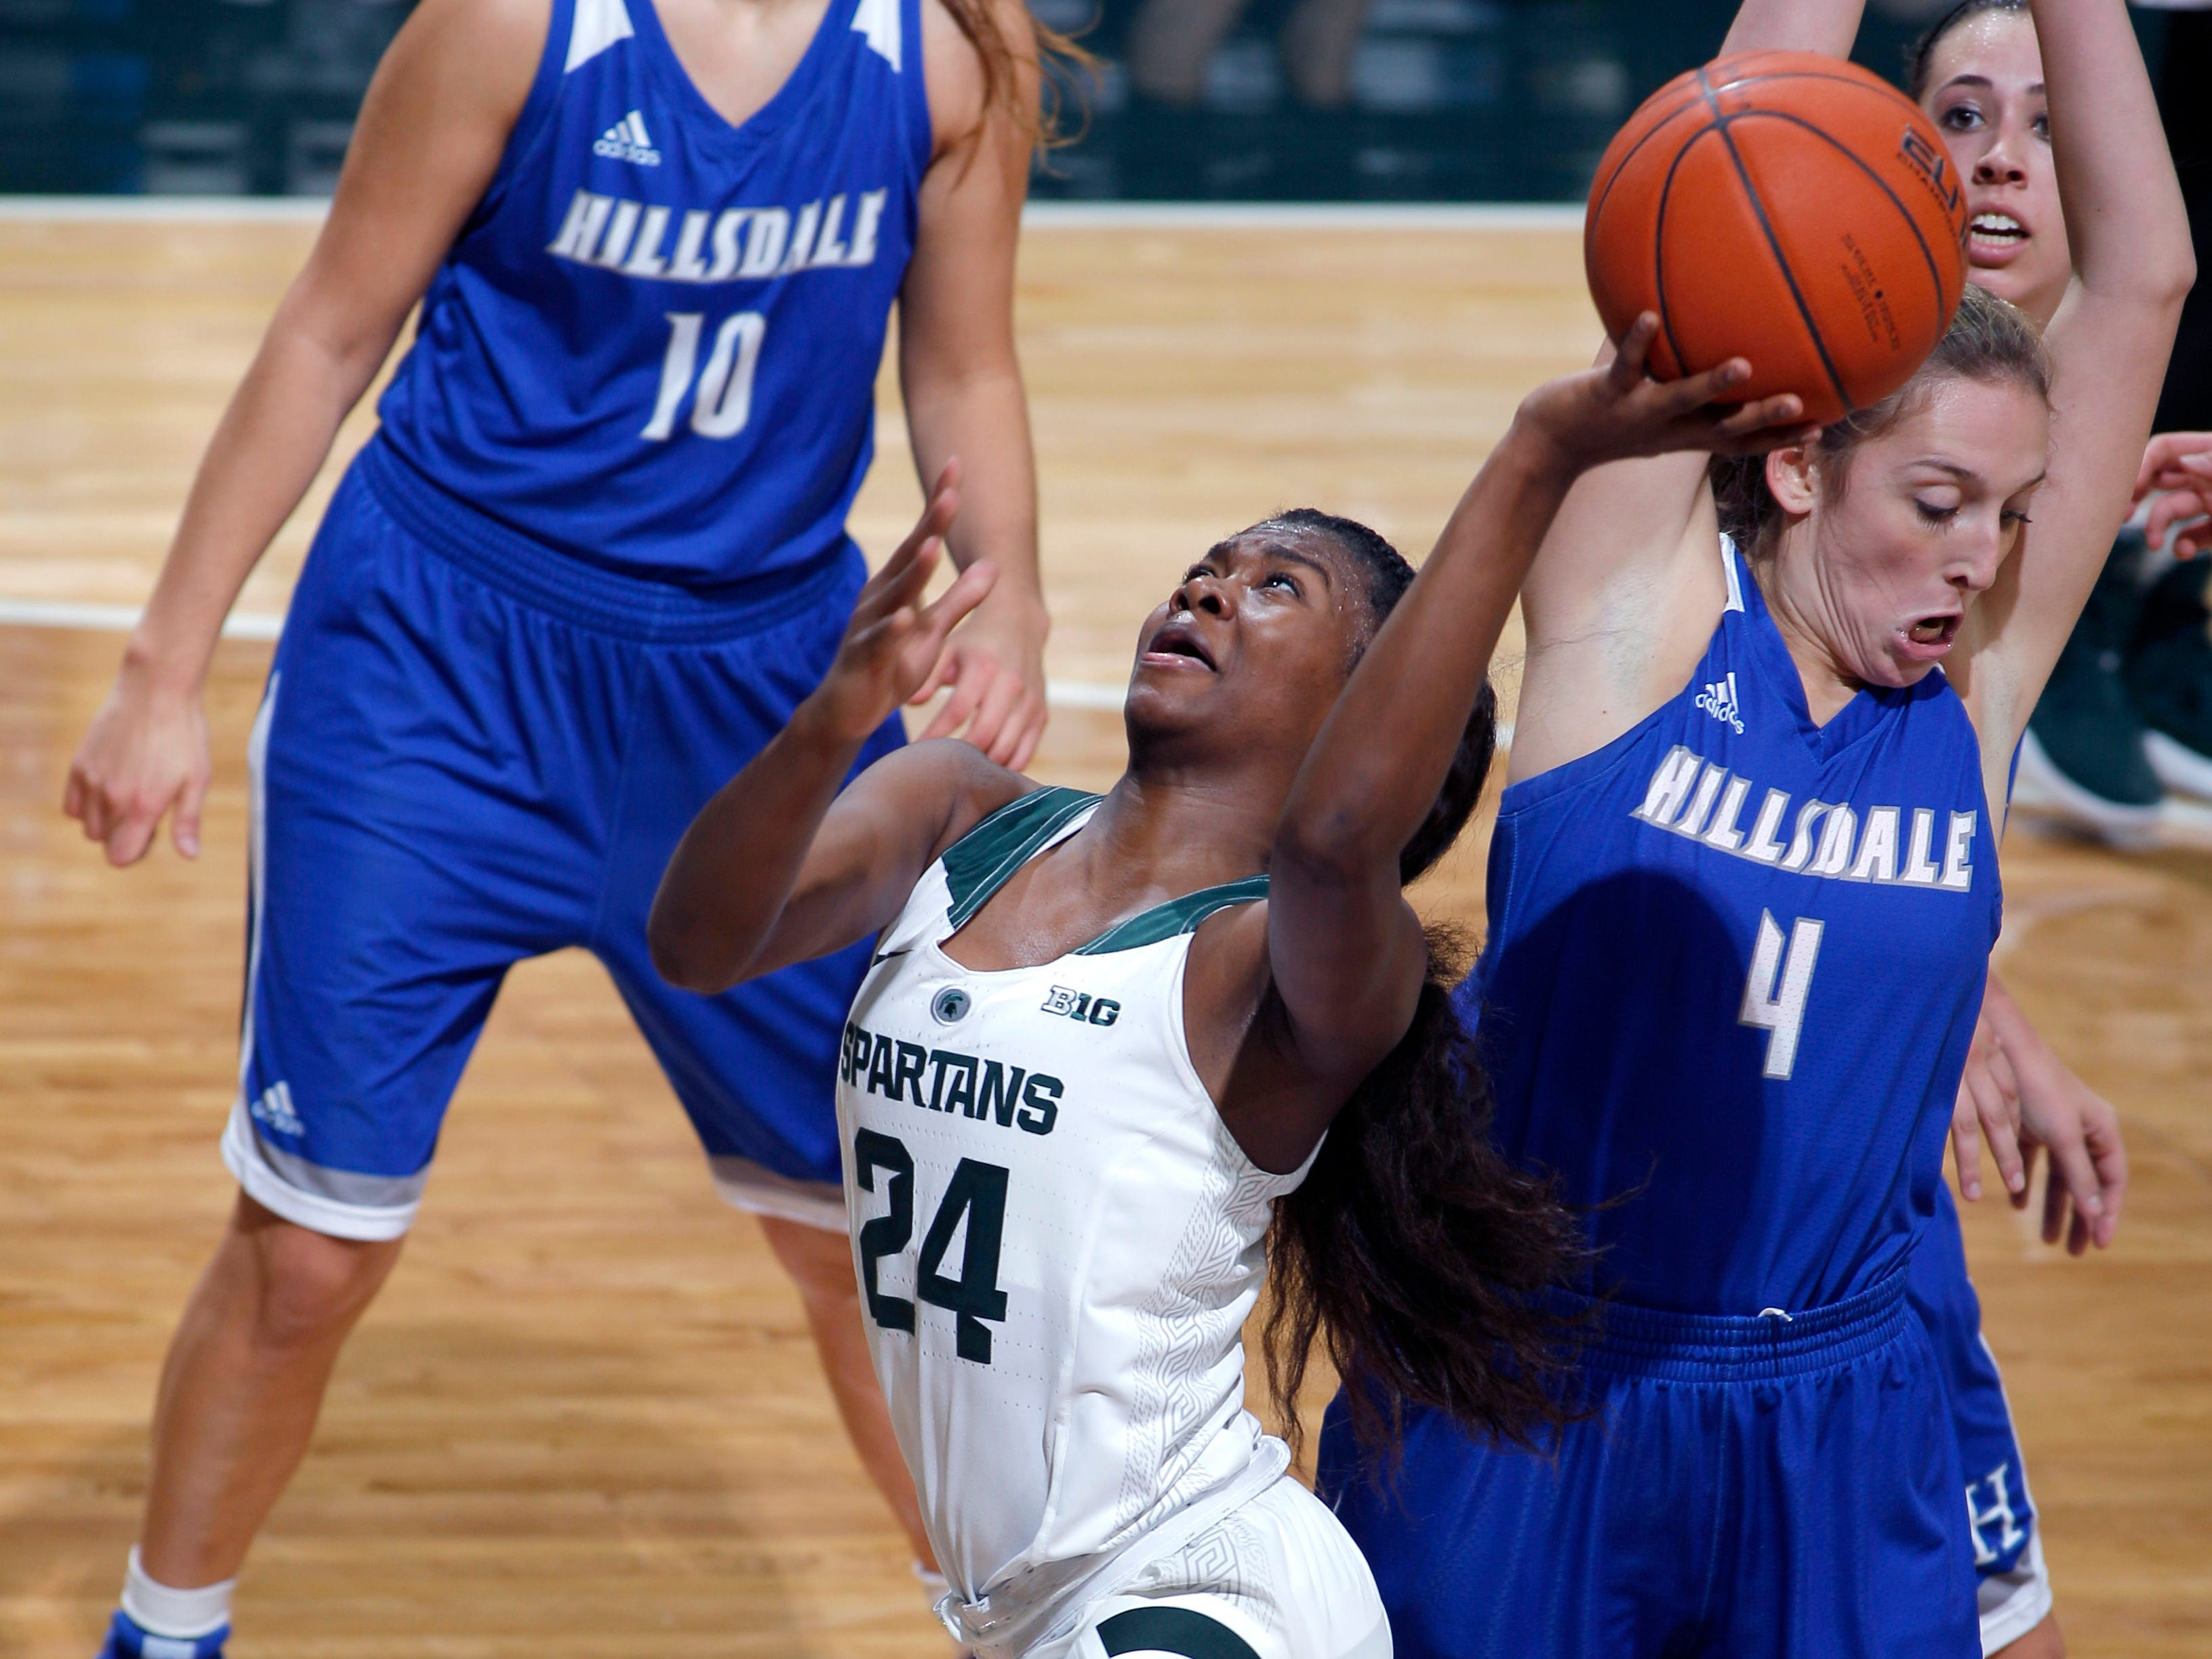 Michigan State's Nia Clouden (24) goes up for a driving shot against Hillsdale's Hunter Stevens (4), Thursday, Nov. 1, 2018, in East Lansing, Mich.